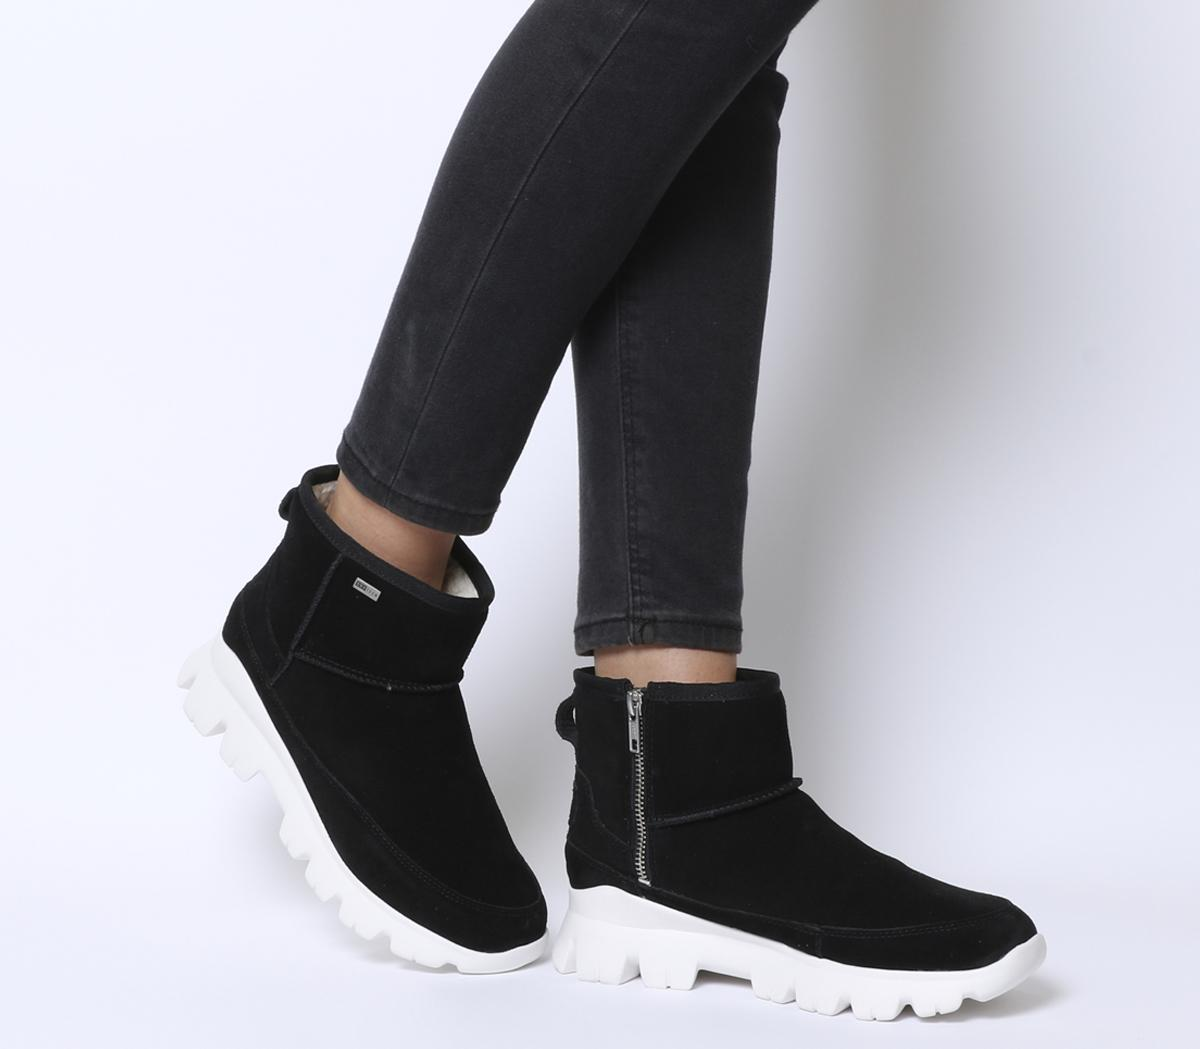 UGG Palomar Sneakers Black - Womens Boots